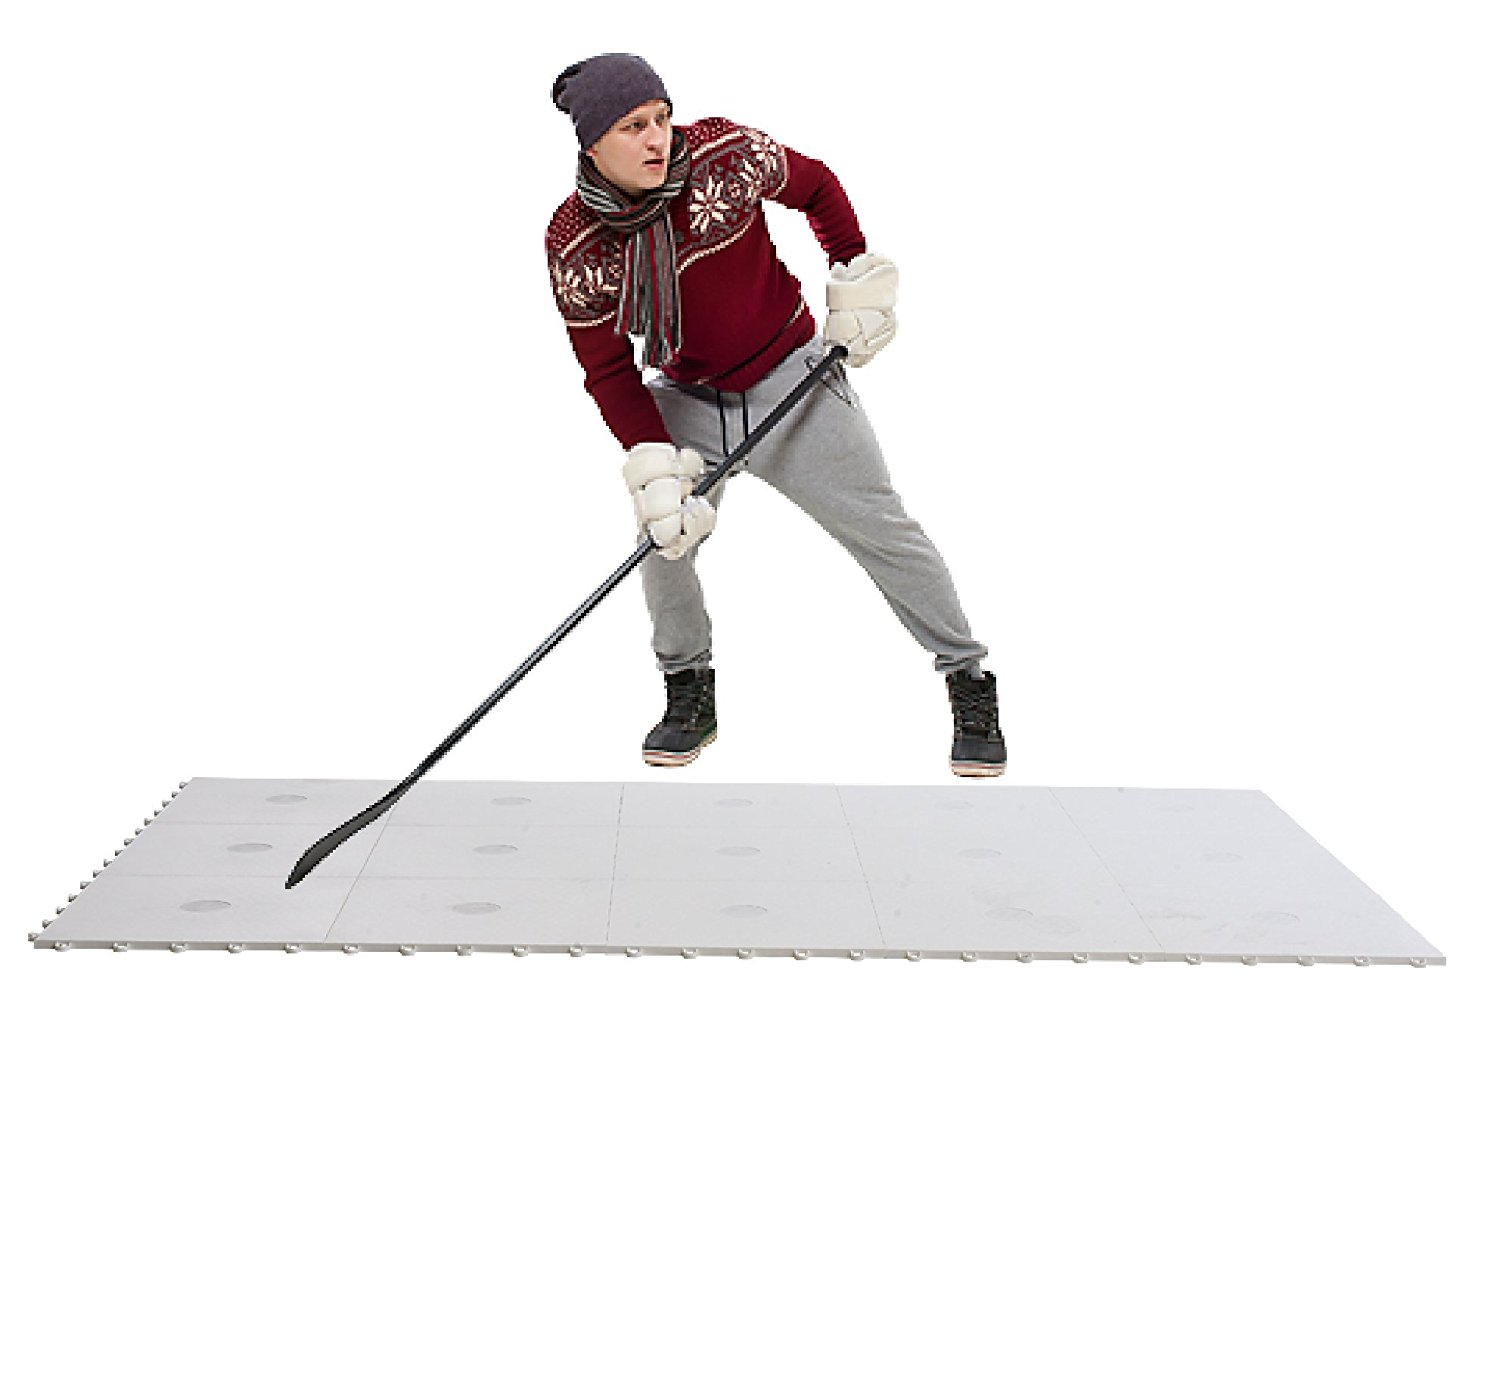 Hockey tiles the tile home guide hockey tiles dailygadgetfo Images